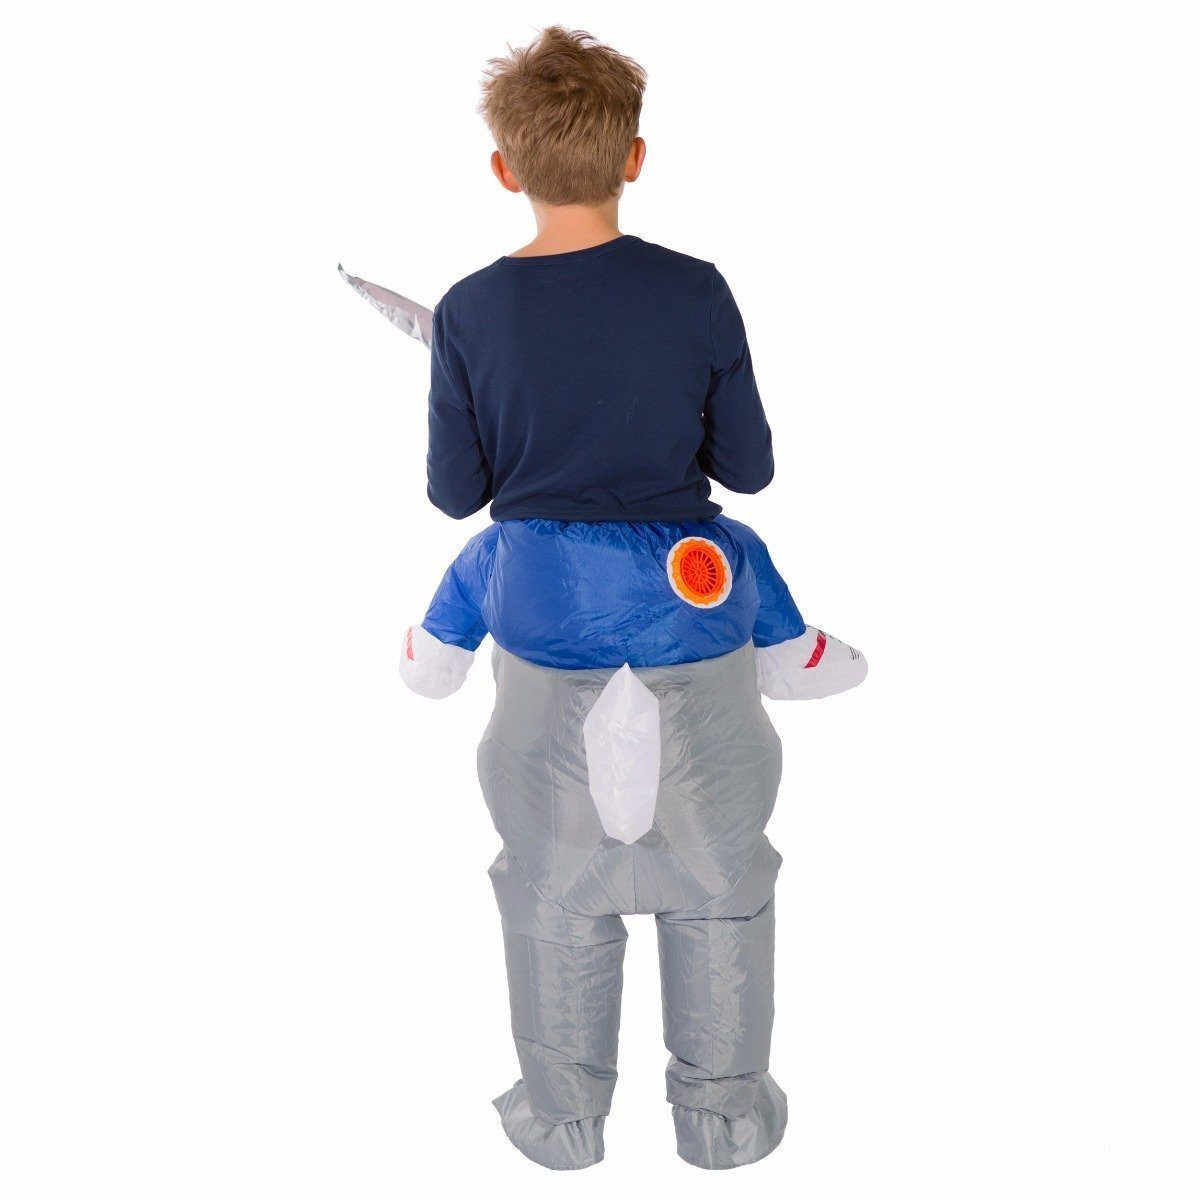 Fancy Dress - Kids Inflatable Rabbit Costume